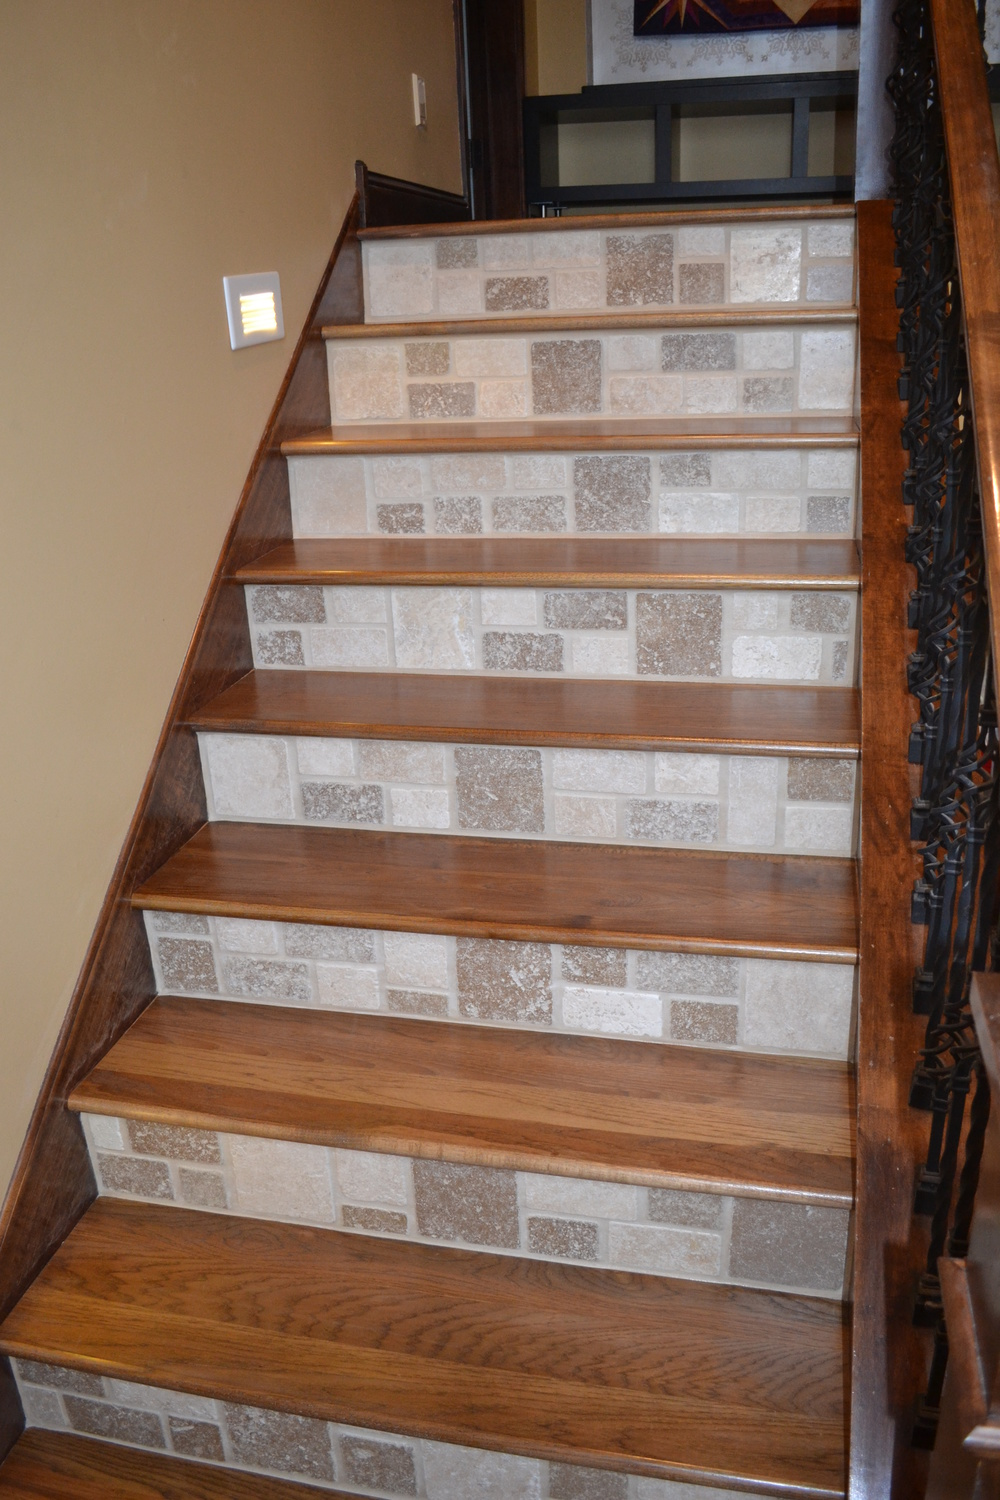 Wood staircase installation gallery raven hardwood flooring - Stairs with tile and wood ...